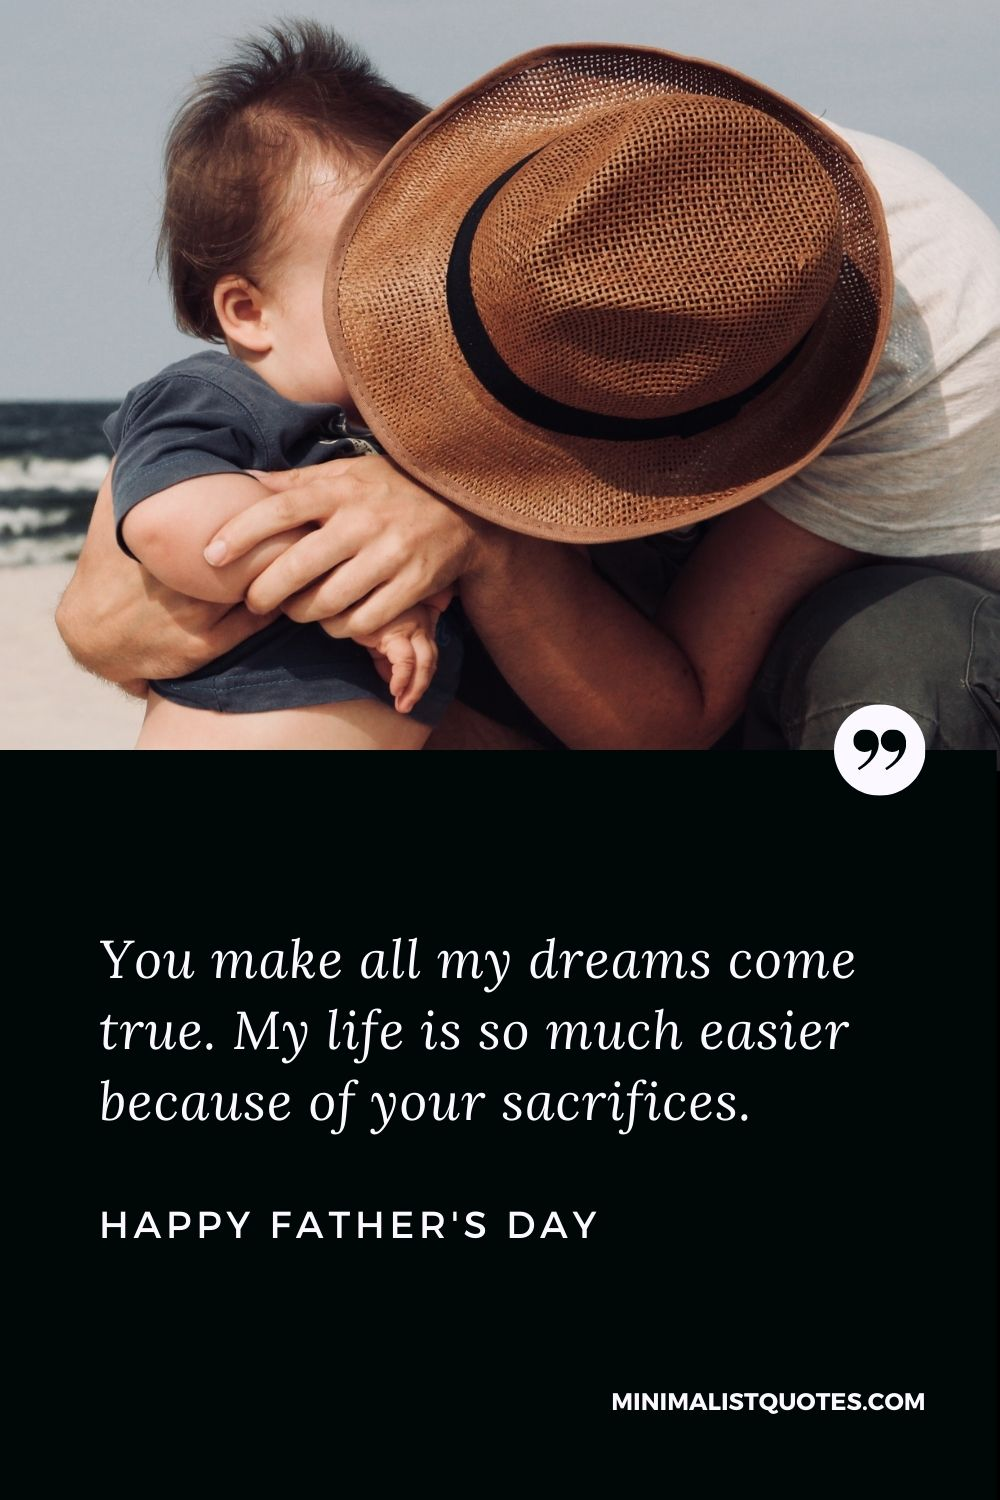 Happy Father's Day Wish - You make all my dreams come true. My life is so much easier because of your sacrifices.